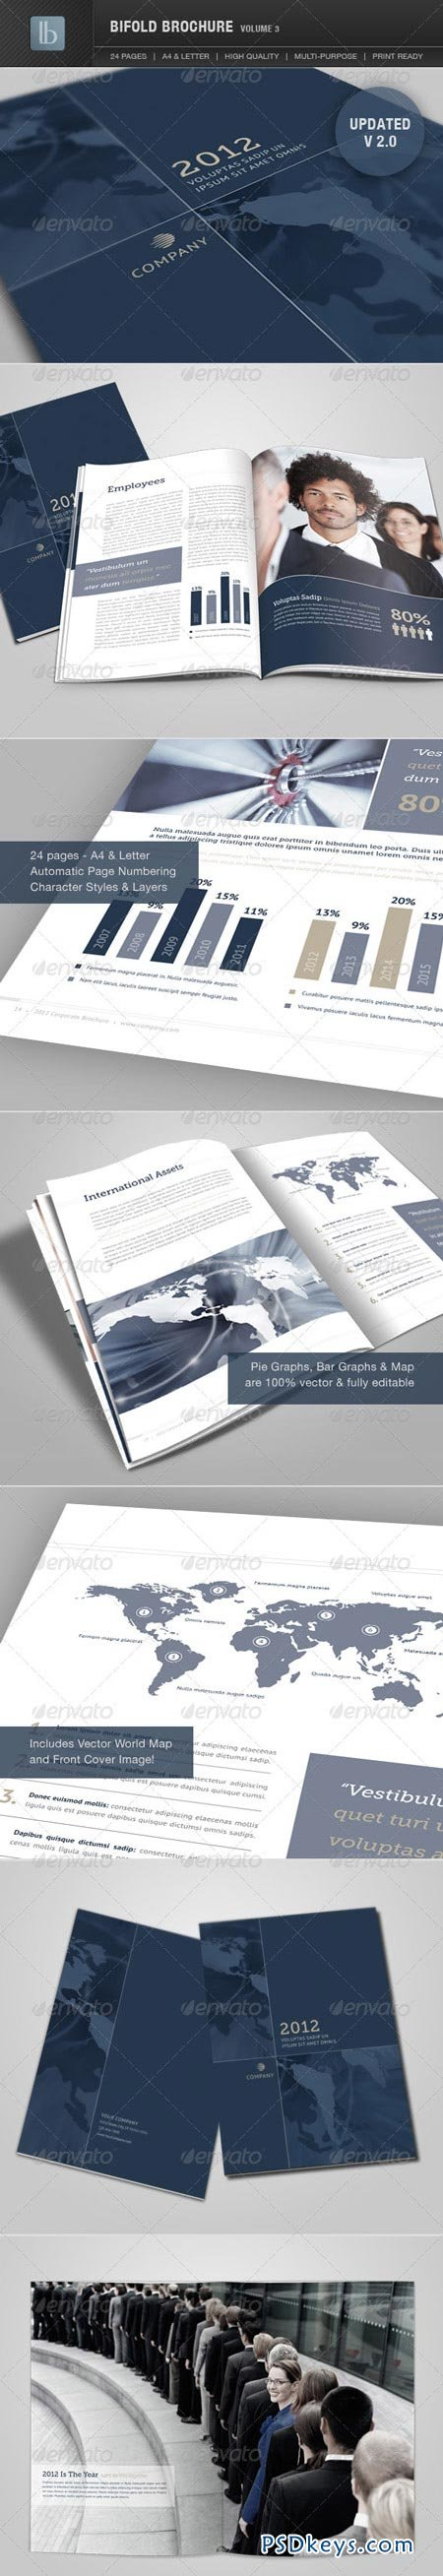 Bifold Brochure Volume 3 GraphicRiver